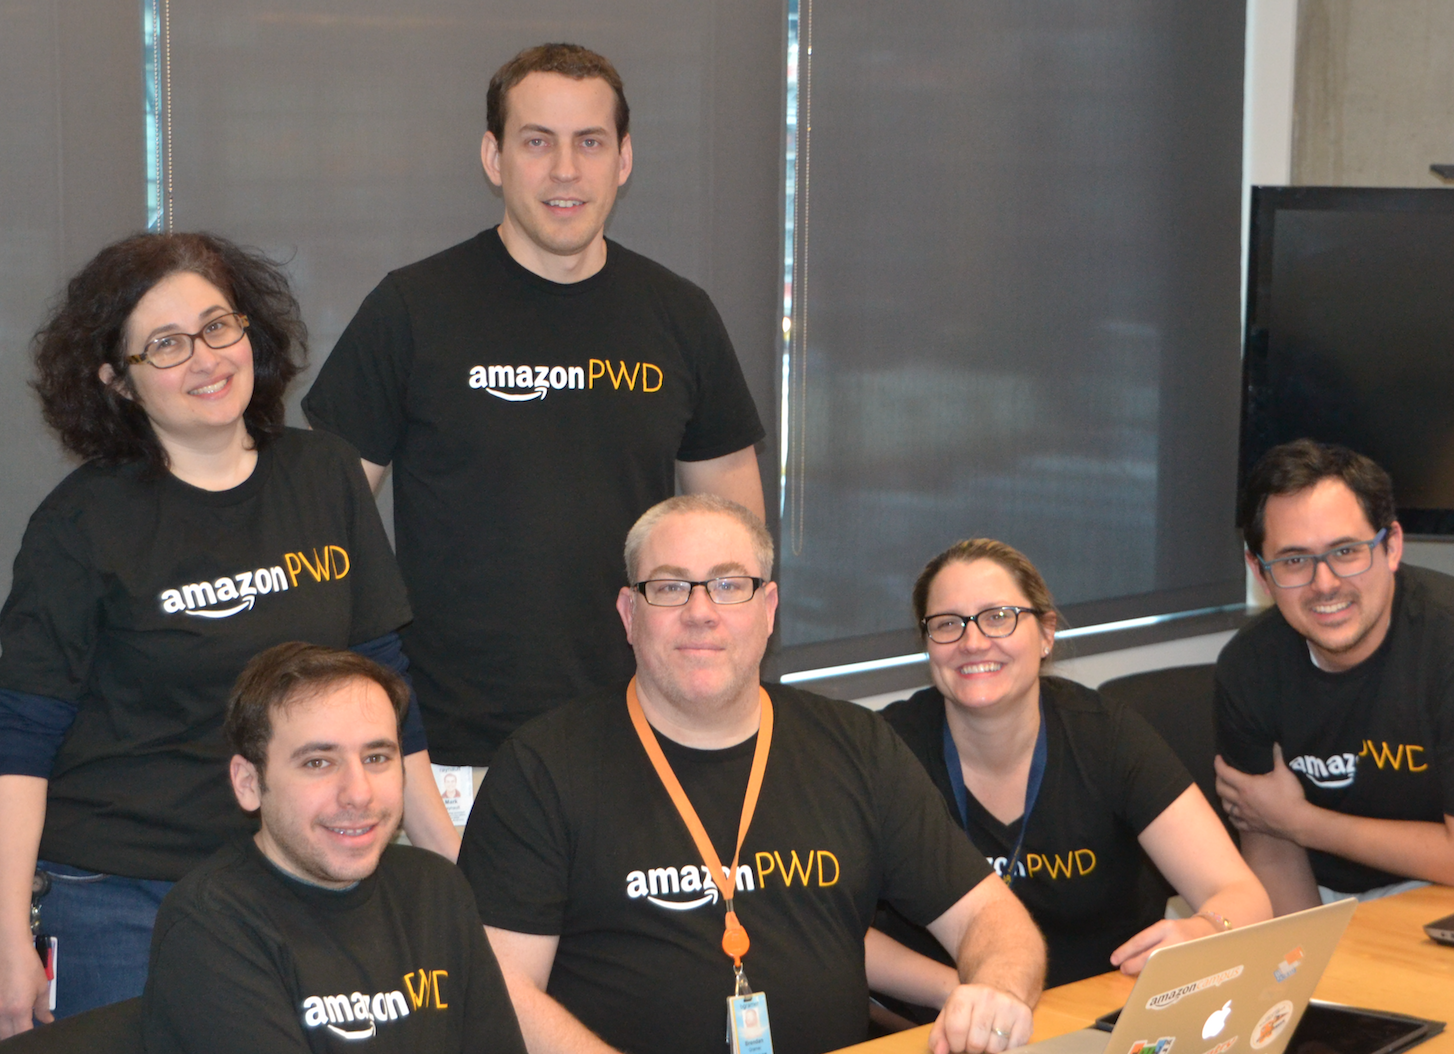 Group photo from an Amazon People with Disabilities event